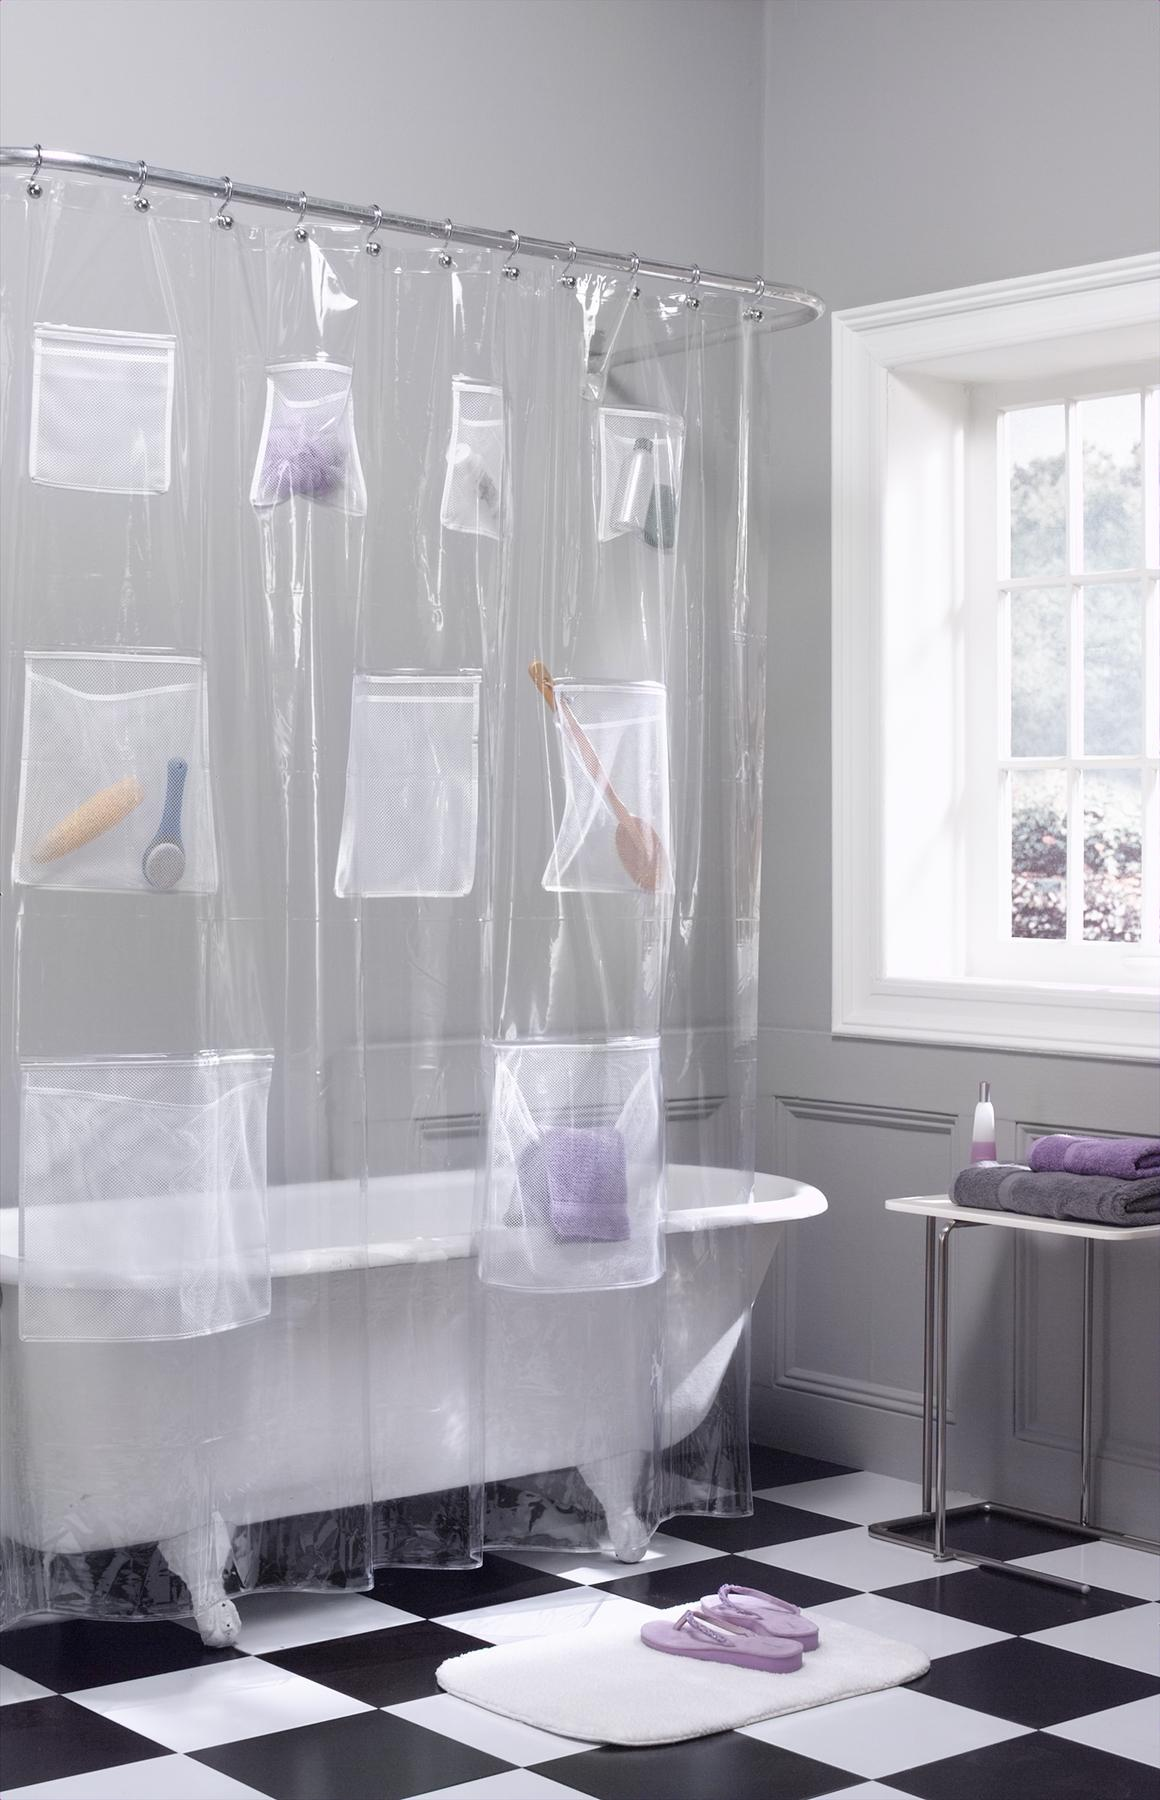 Merveilleux Shower Curtain Liner | Hookless Shower Curtain Liner | Non Toxic Shower  Curtain Liner